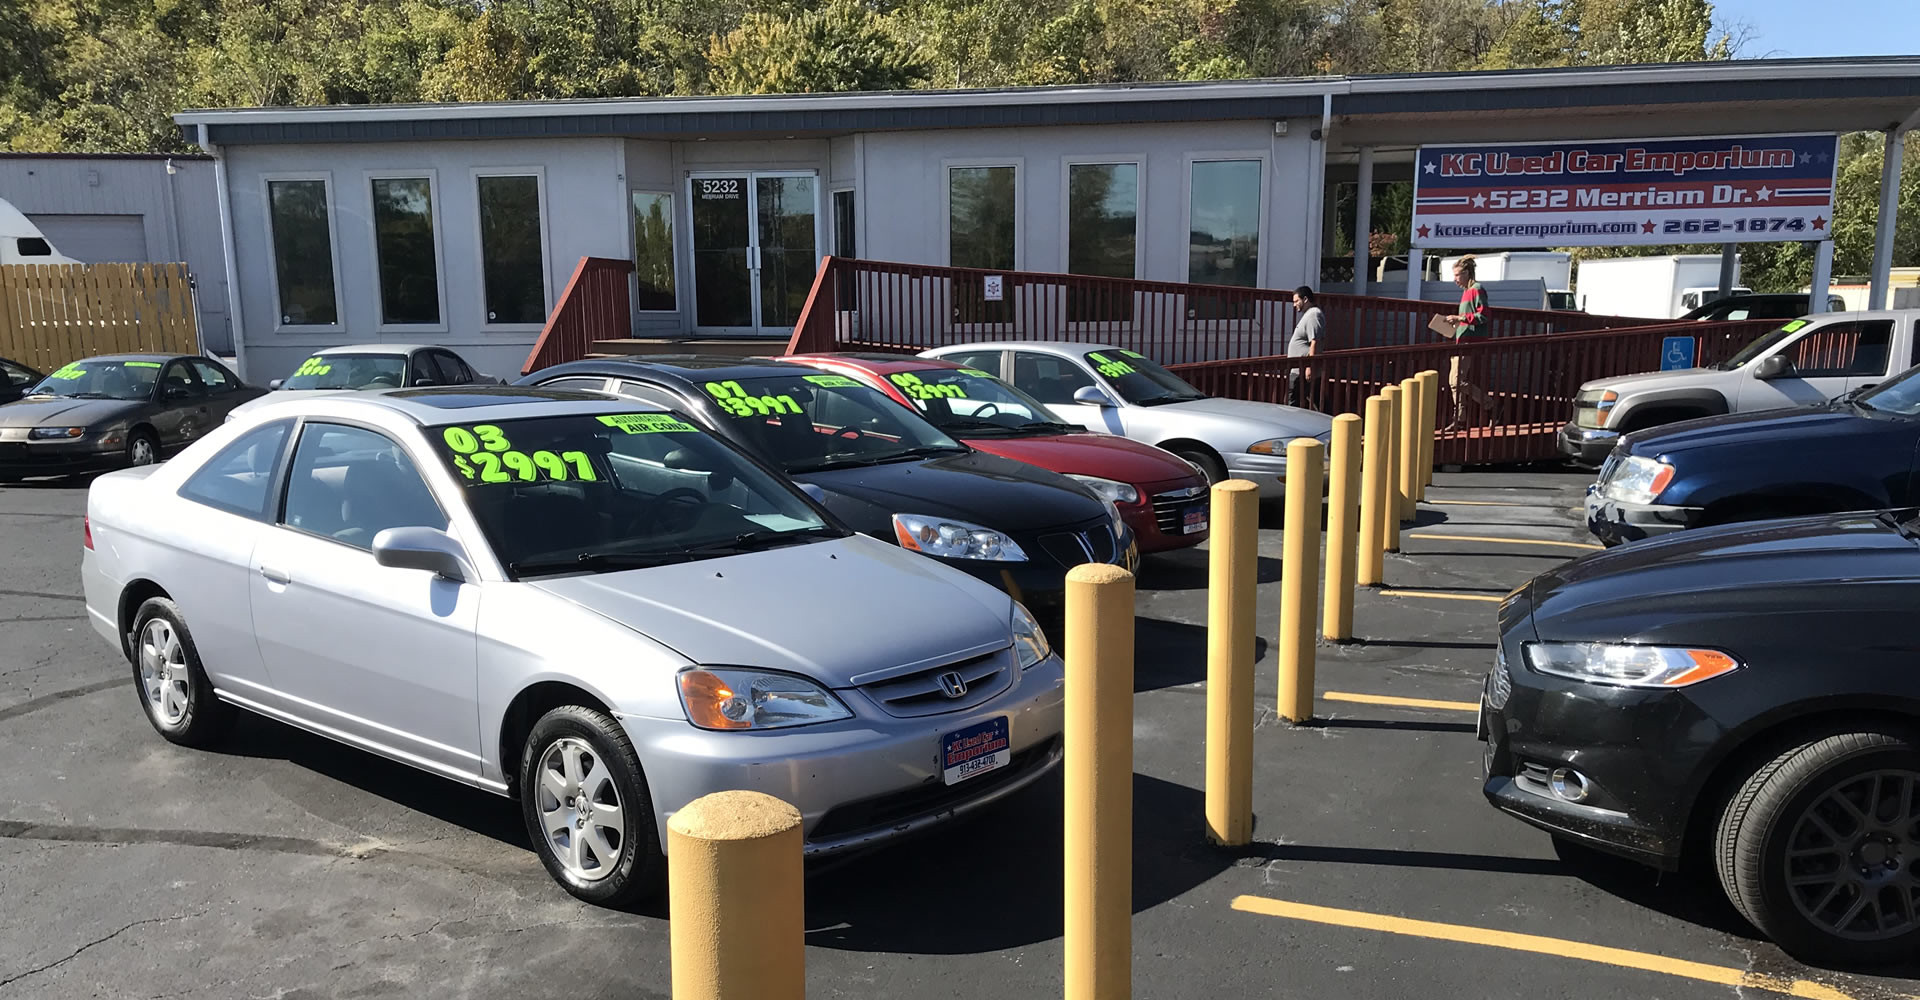 2nd Hand Cars Near Me Fresh Used Car Under 3000 Inspirational Used Cars Near Me Under 5000